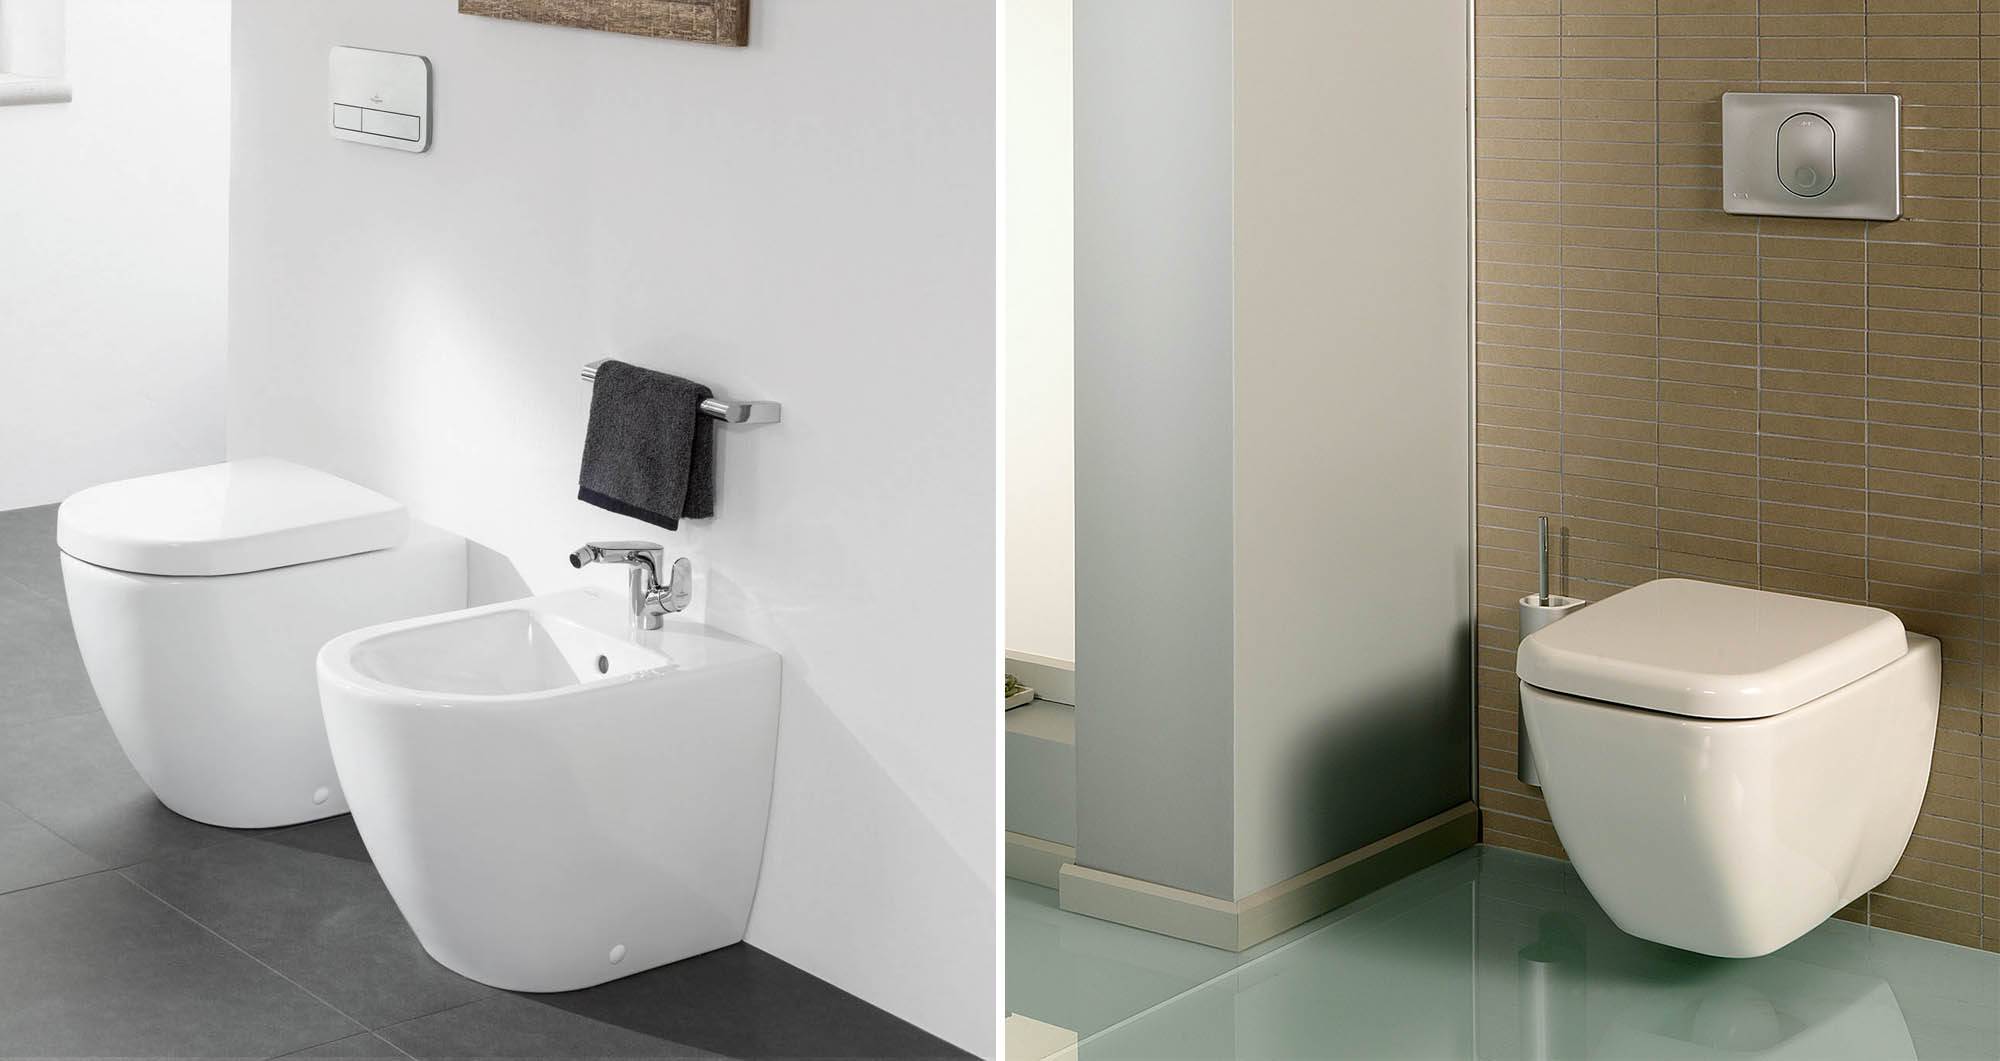 Side by side comparison of a floor mounted and wall mounted bidet.